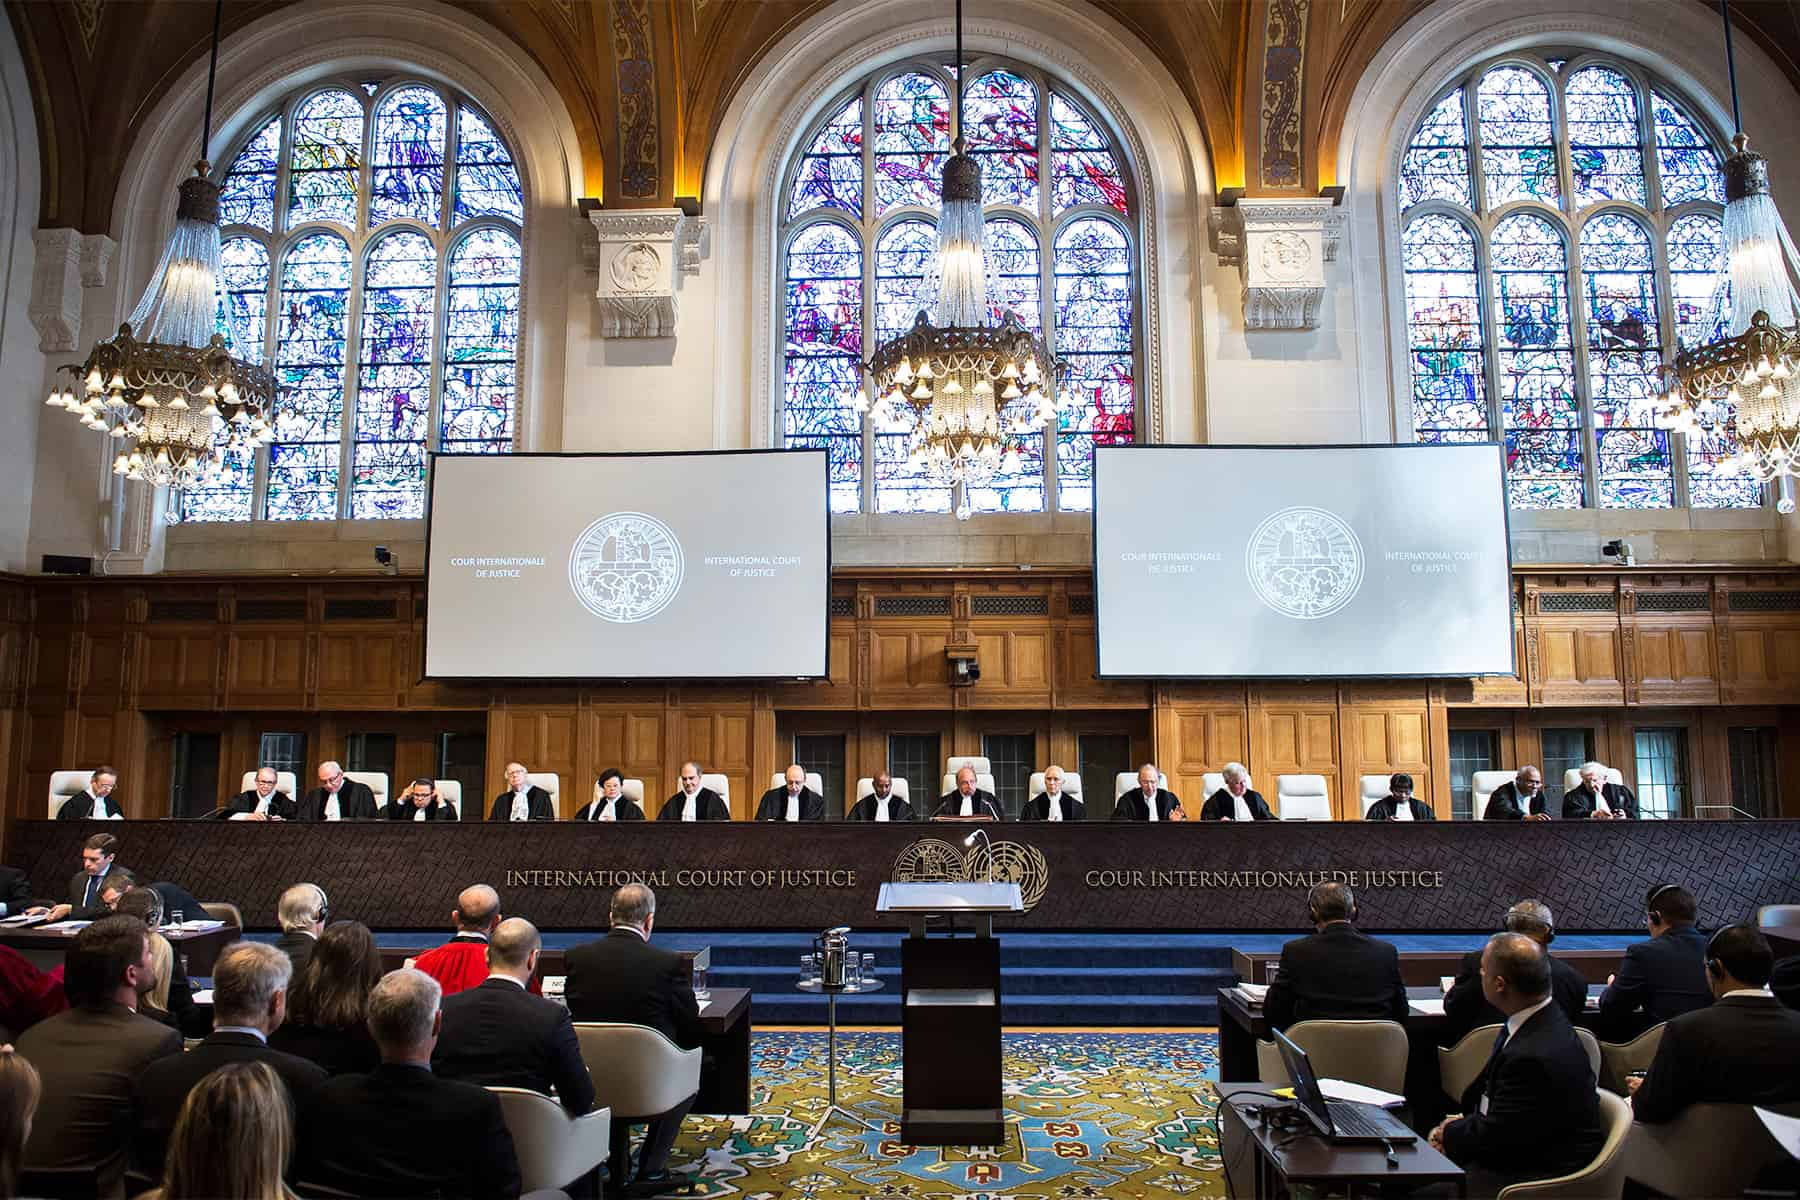 International Court of Justice, The Hague, Netherlands